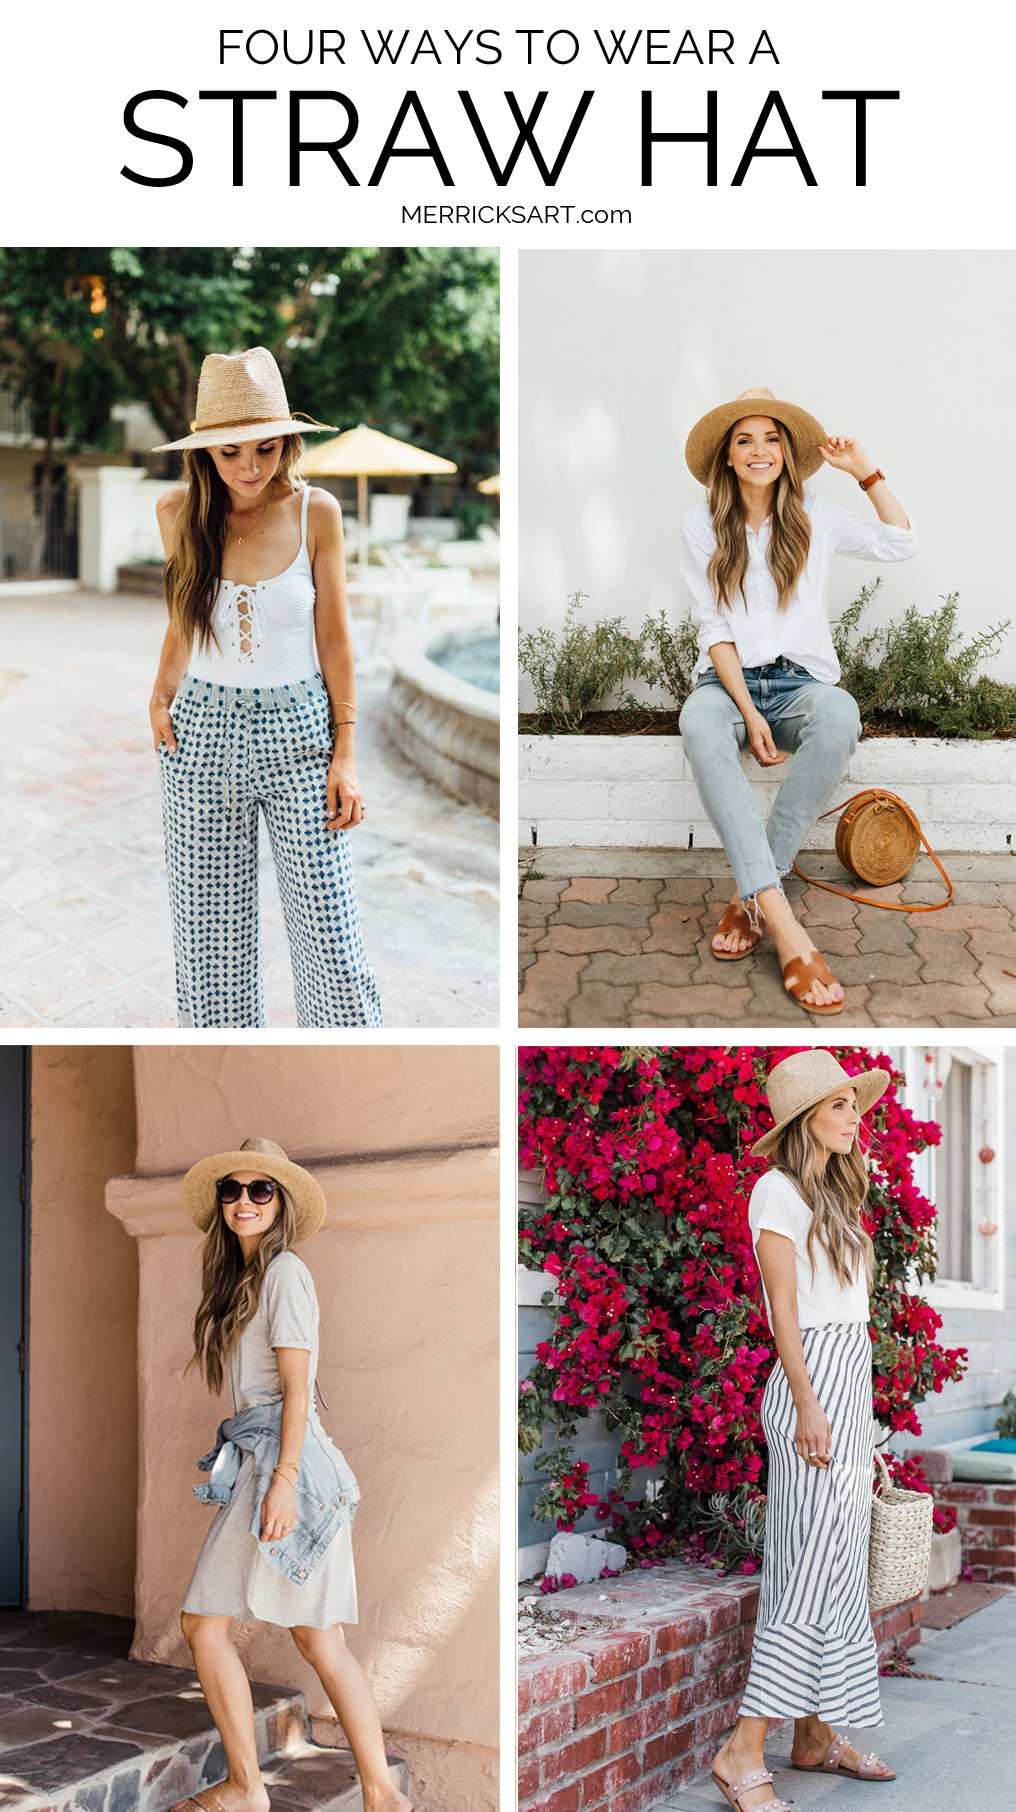 lots of inspiration from these four ways to wear a straw hat